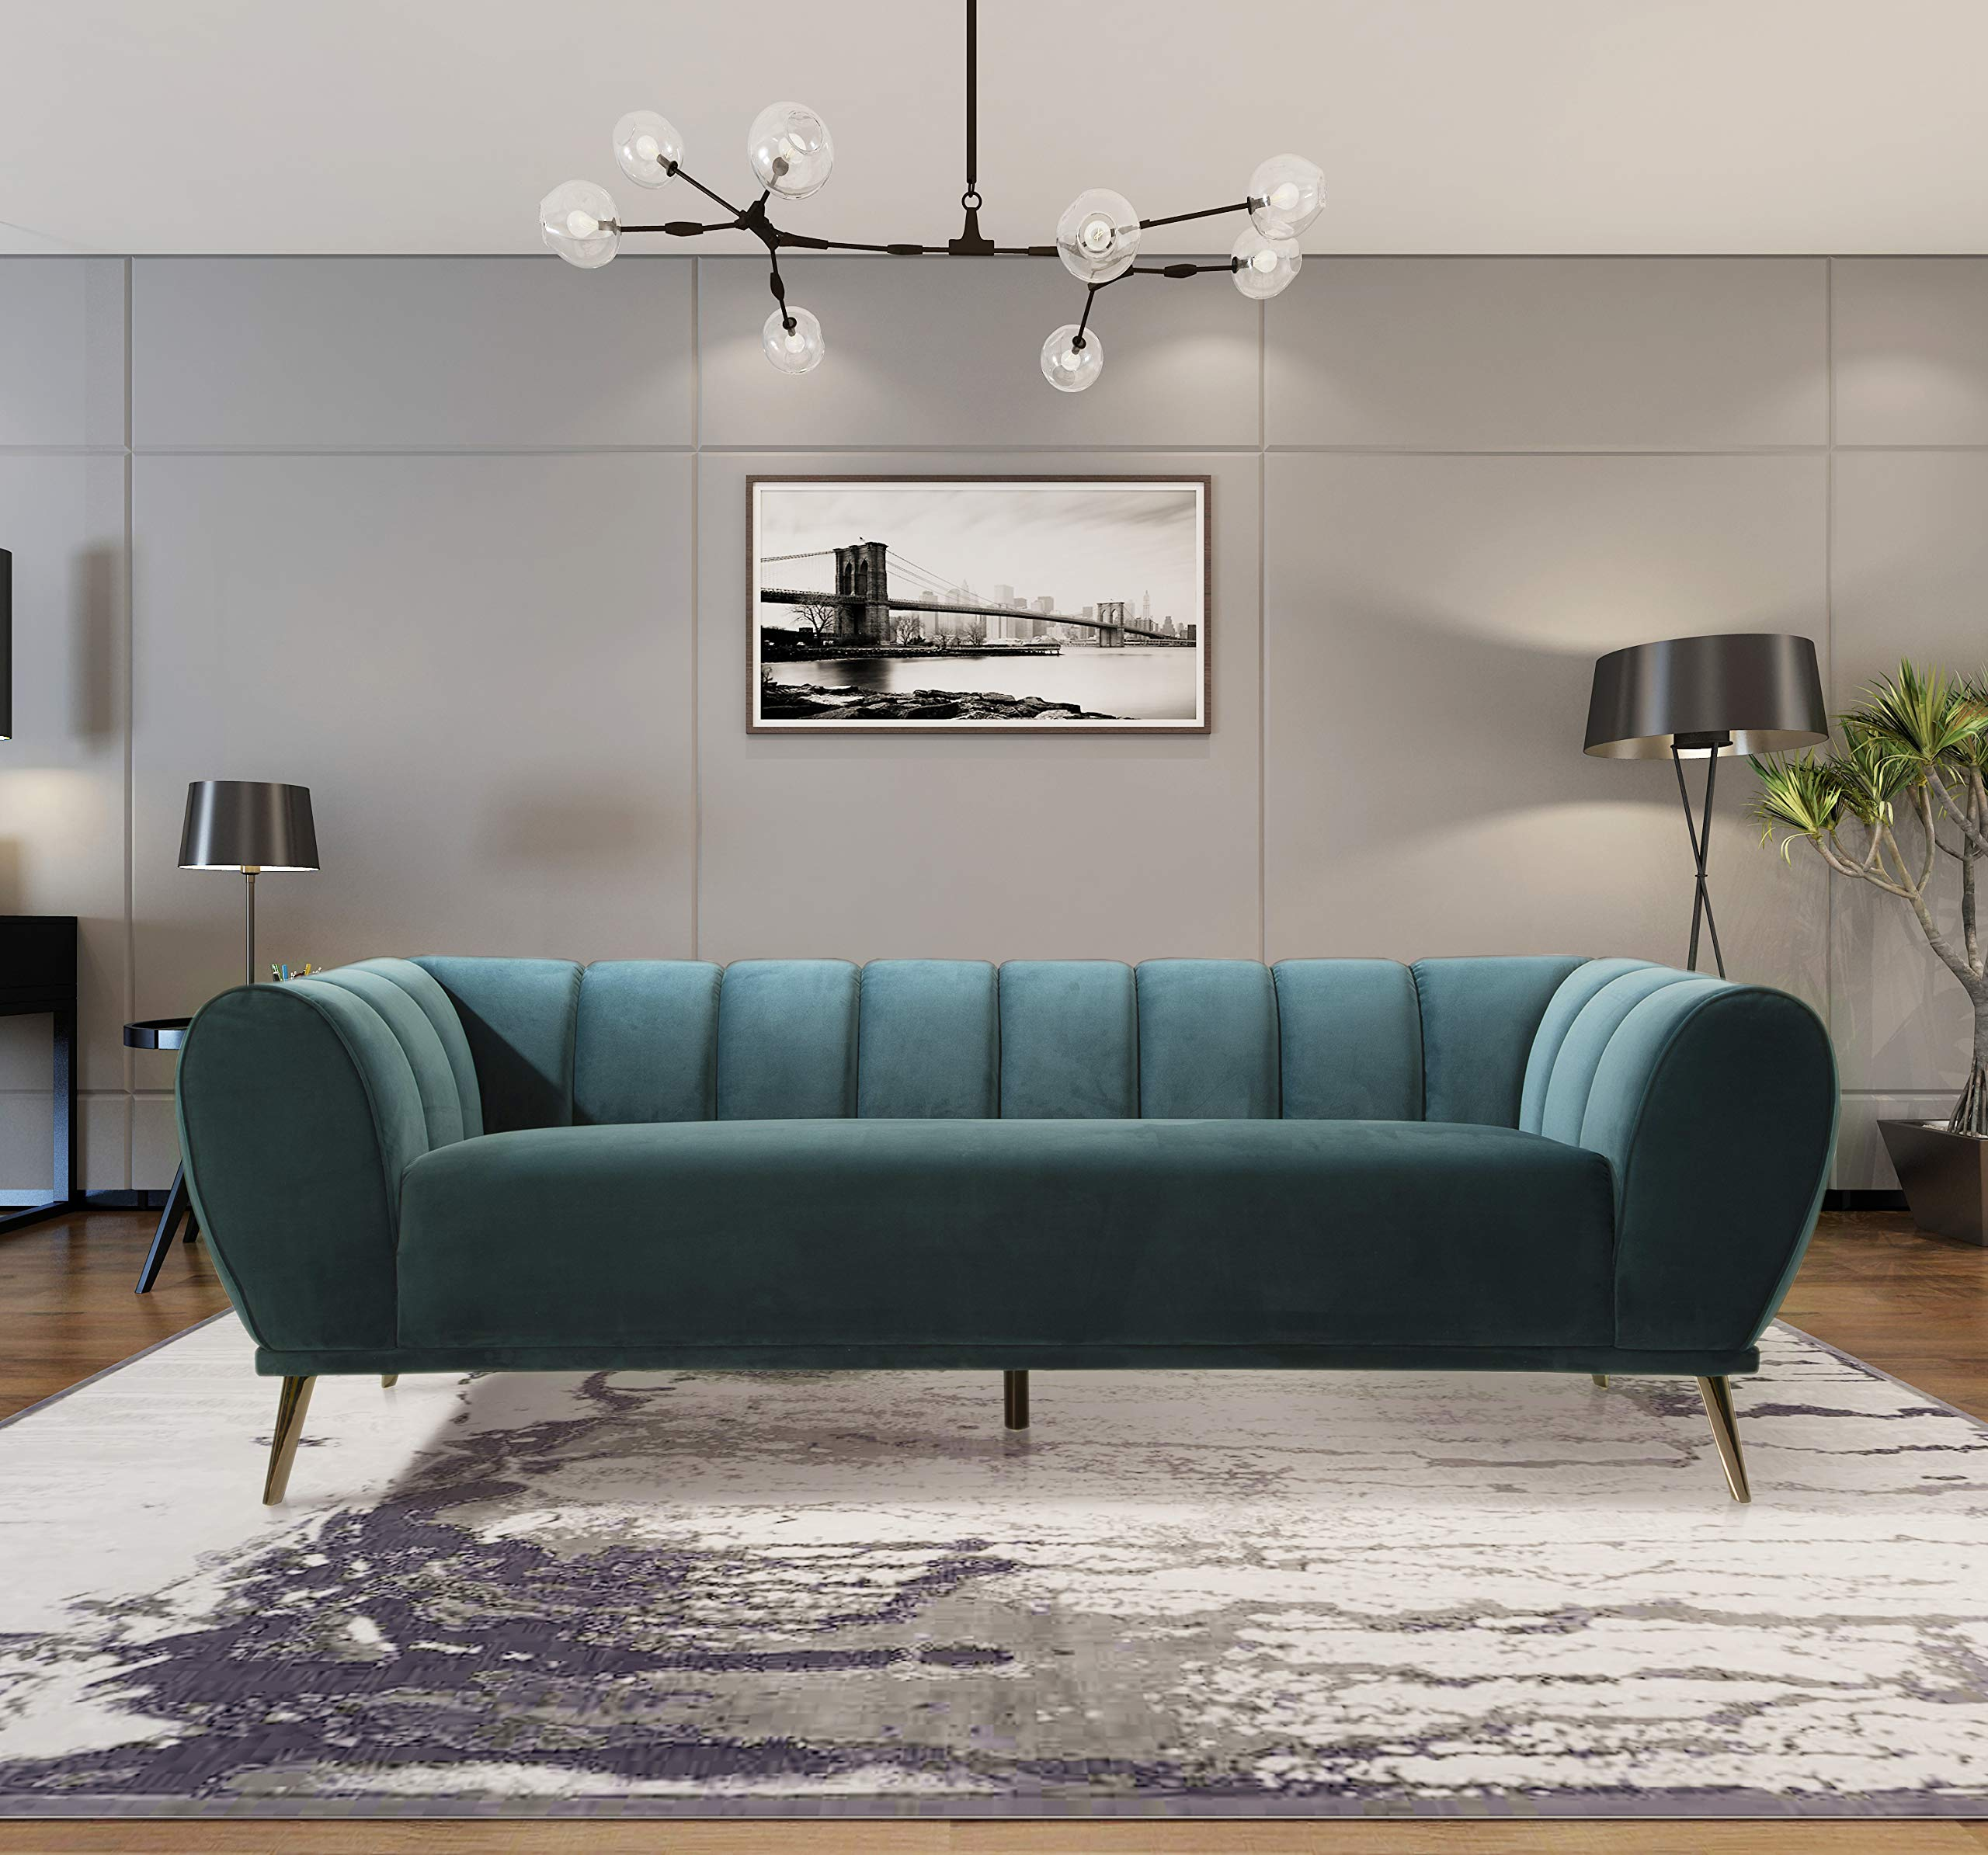 Iconic Home Sybel Sofa Velvet Upholstered Vertical Channel-Quilted Shelter Arm Single Bench Design Solid Metal Legs Modern Contemporary, TEAL by Iconic Home